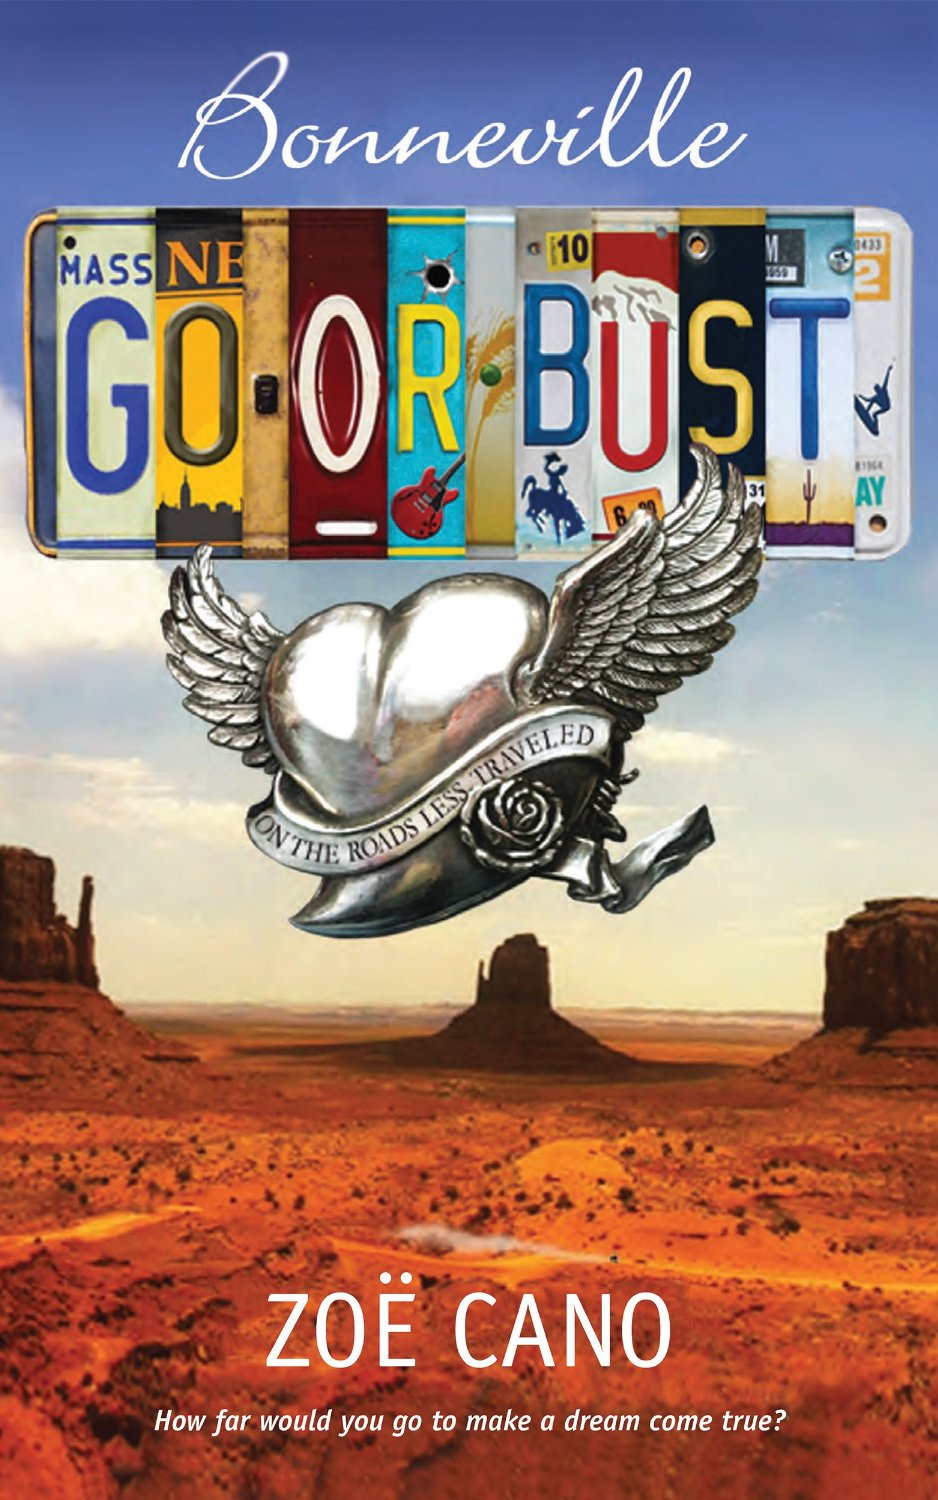 'Bonneville Go or Bust – on the roads less travelled' by Zoe Cano